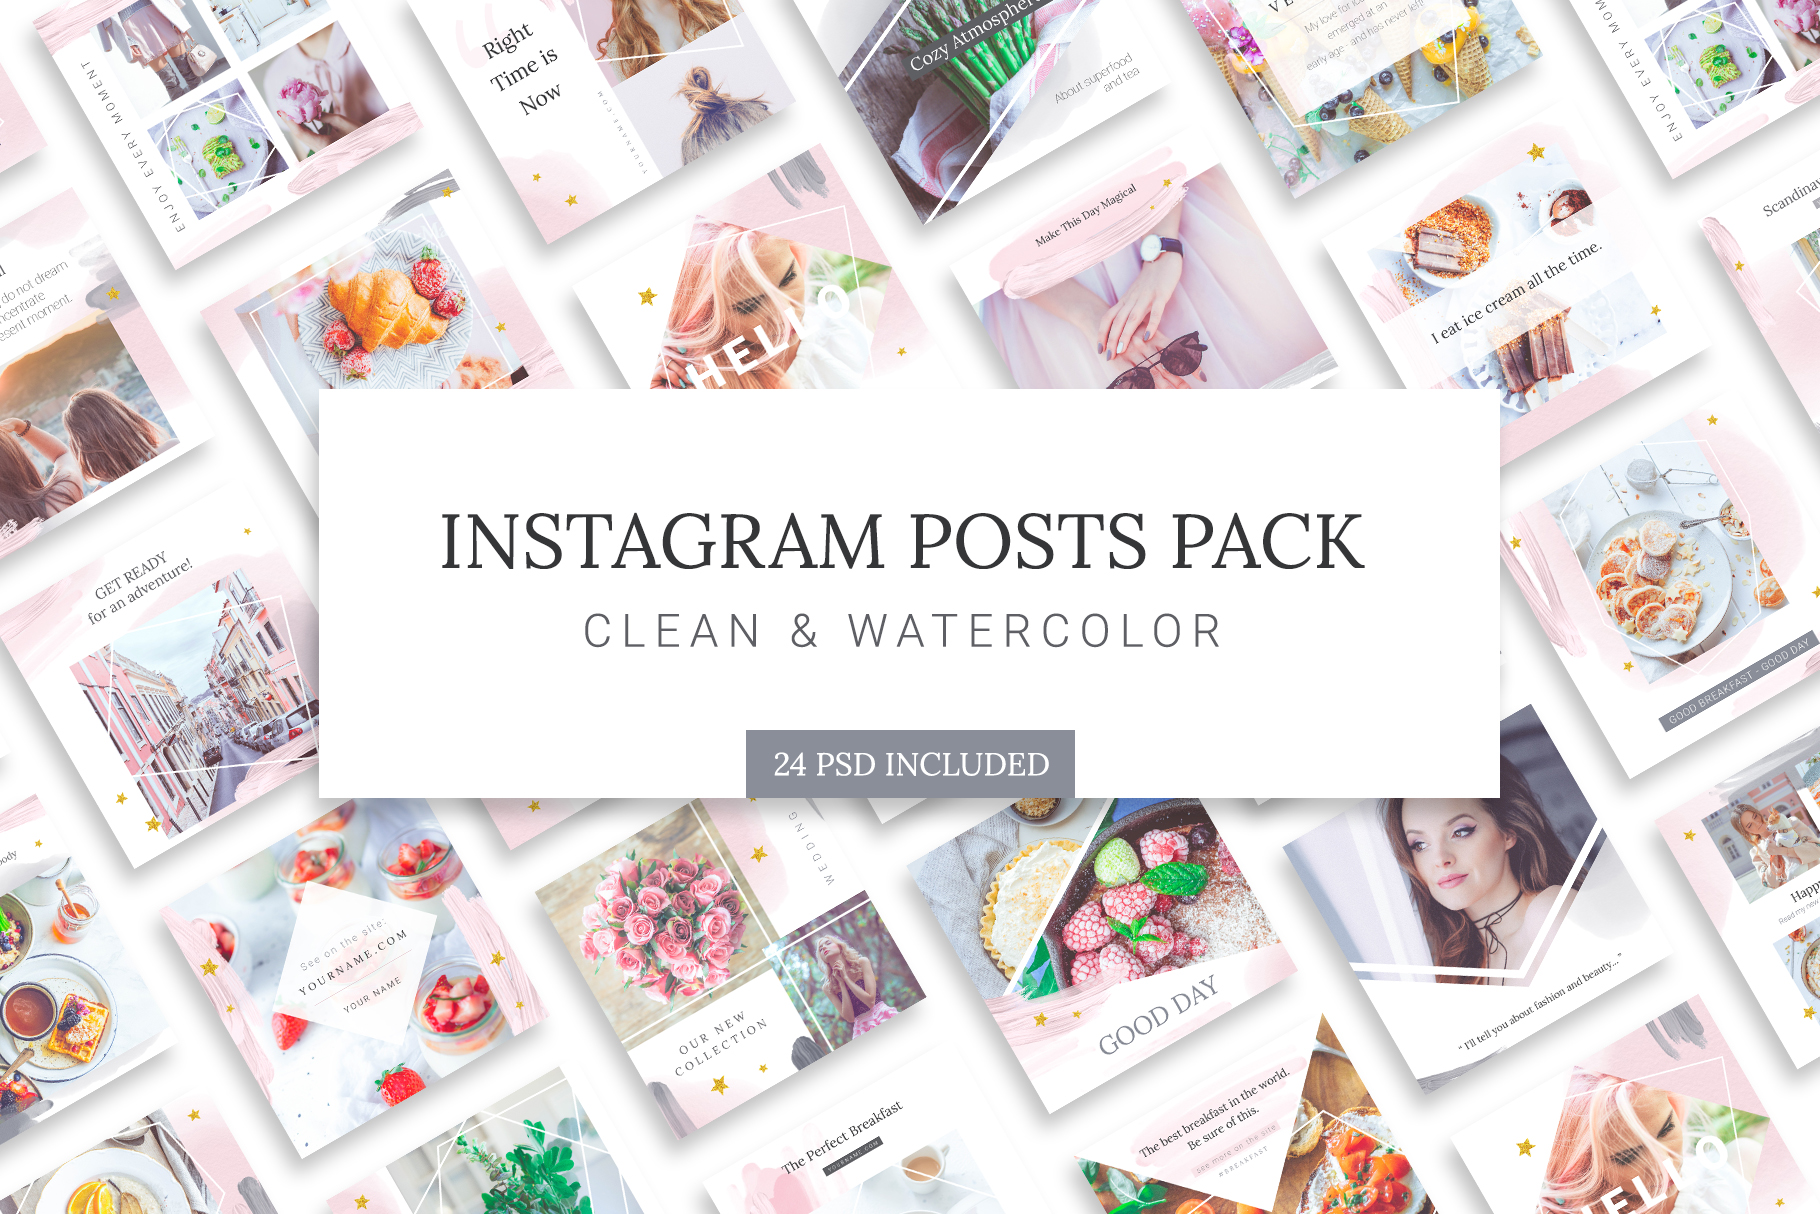 Instagram Watercolor Posts Pack example image 1